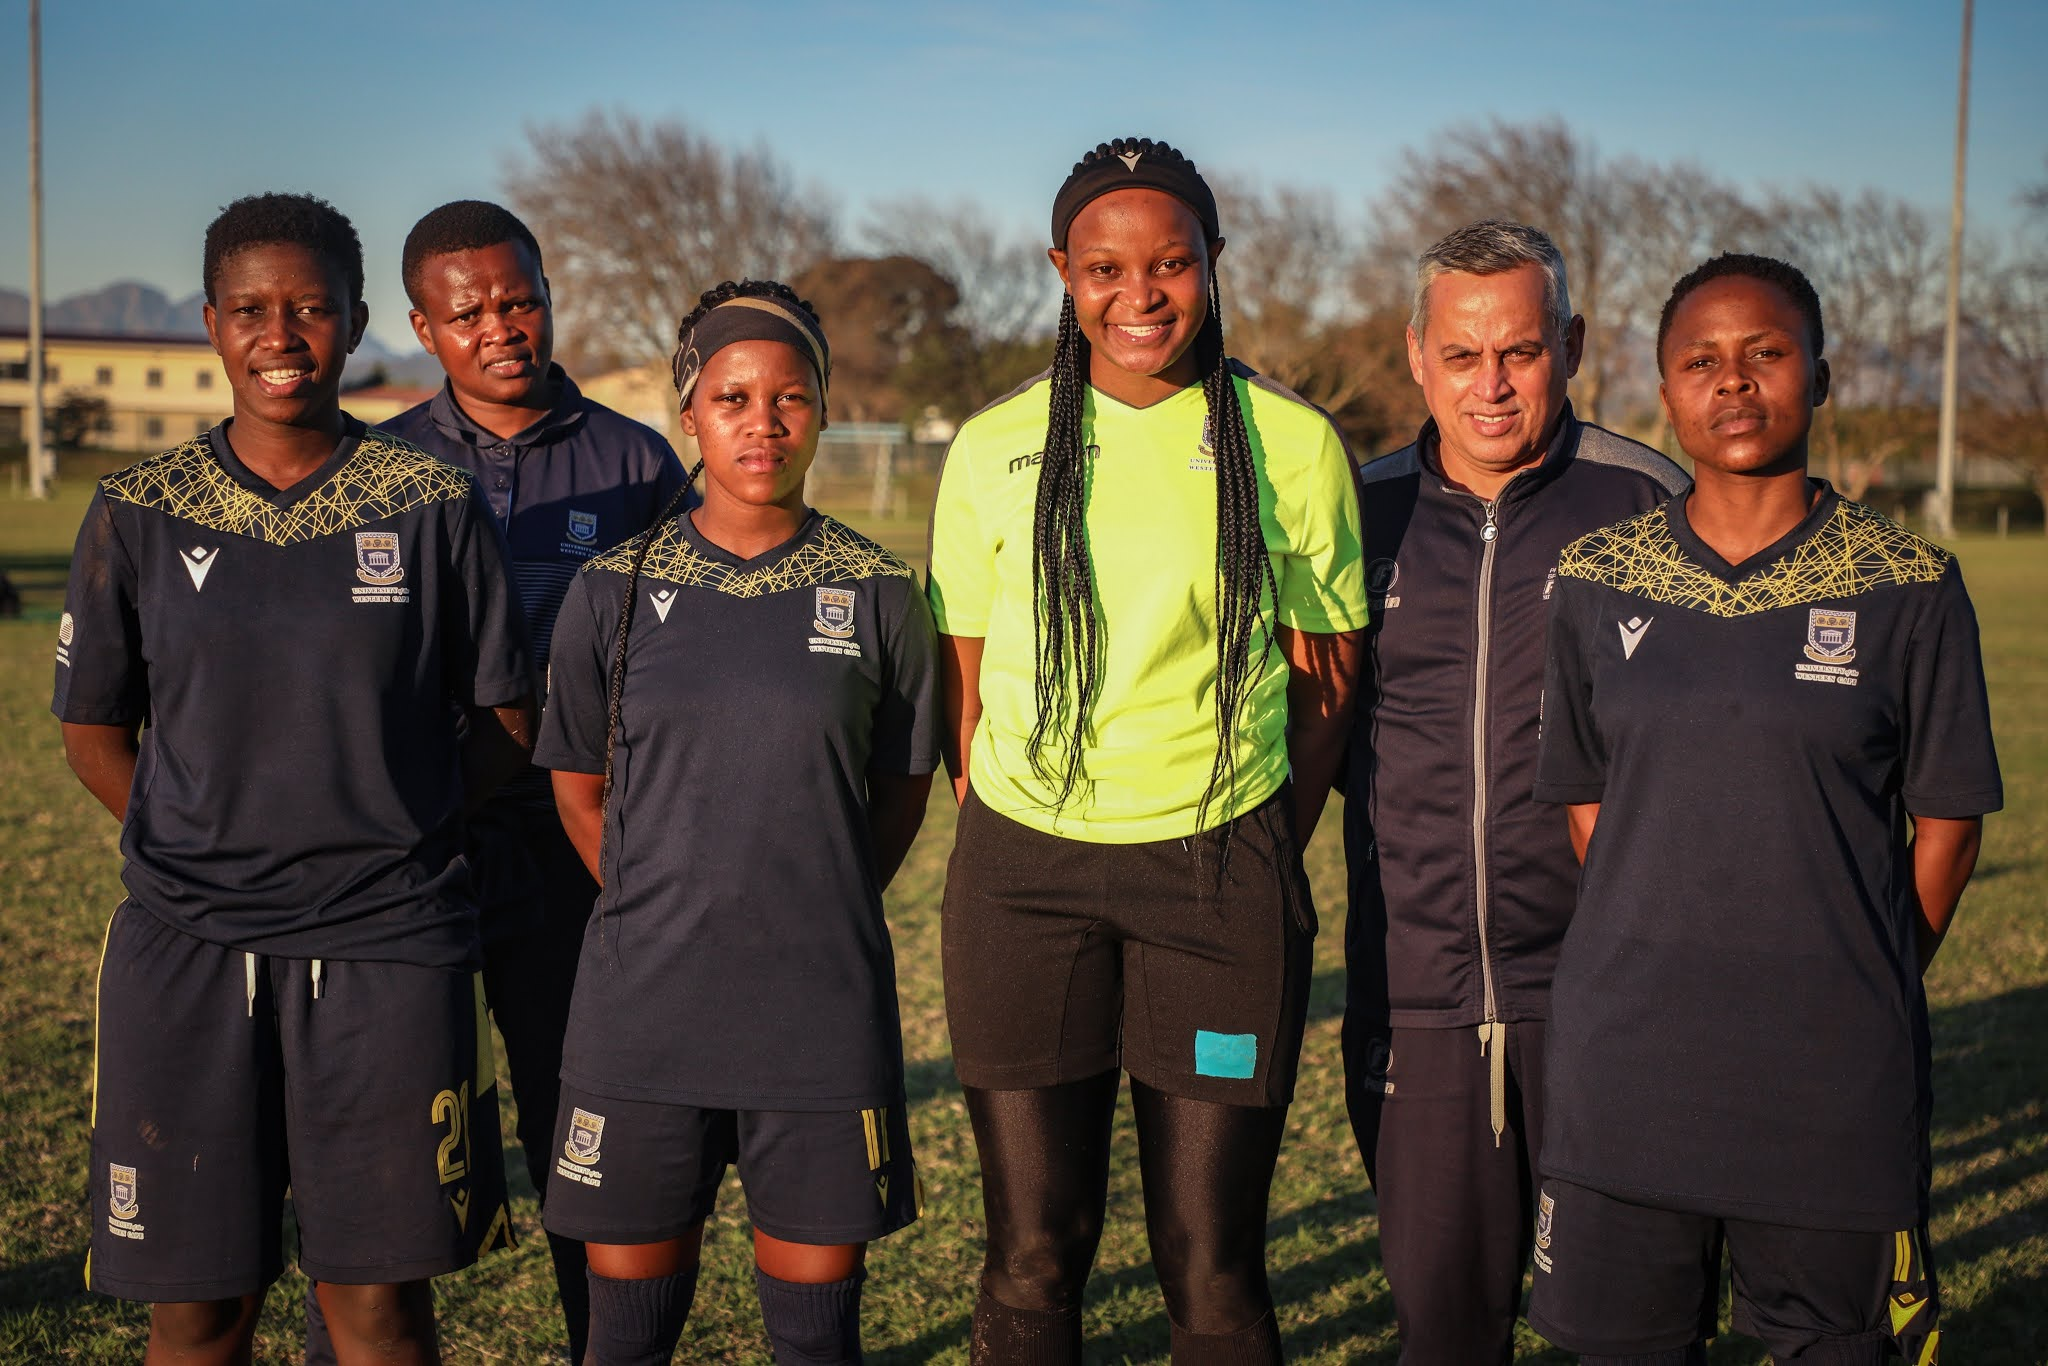 UWC Ladies have four players representing the club in the next Bafana Bafana squad